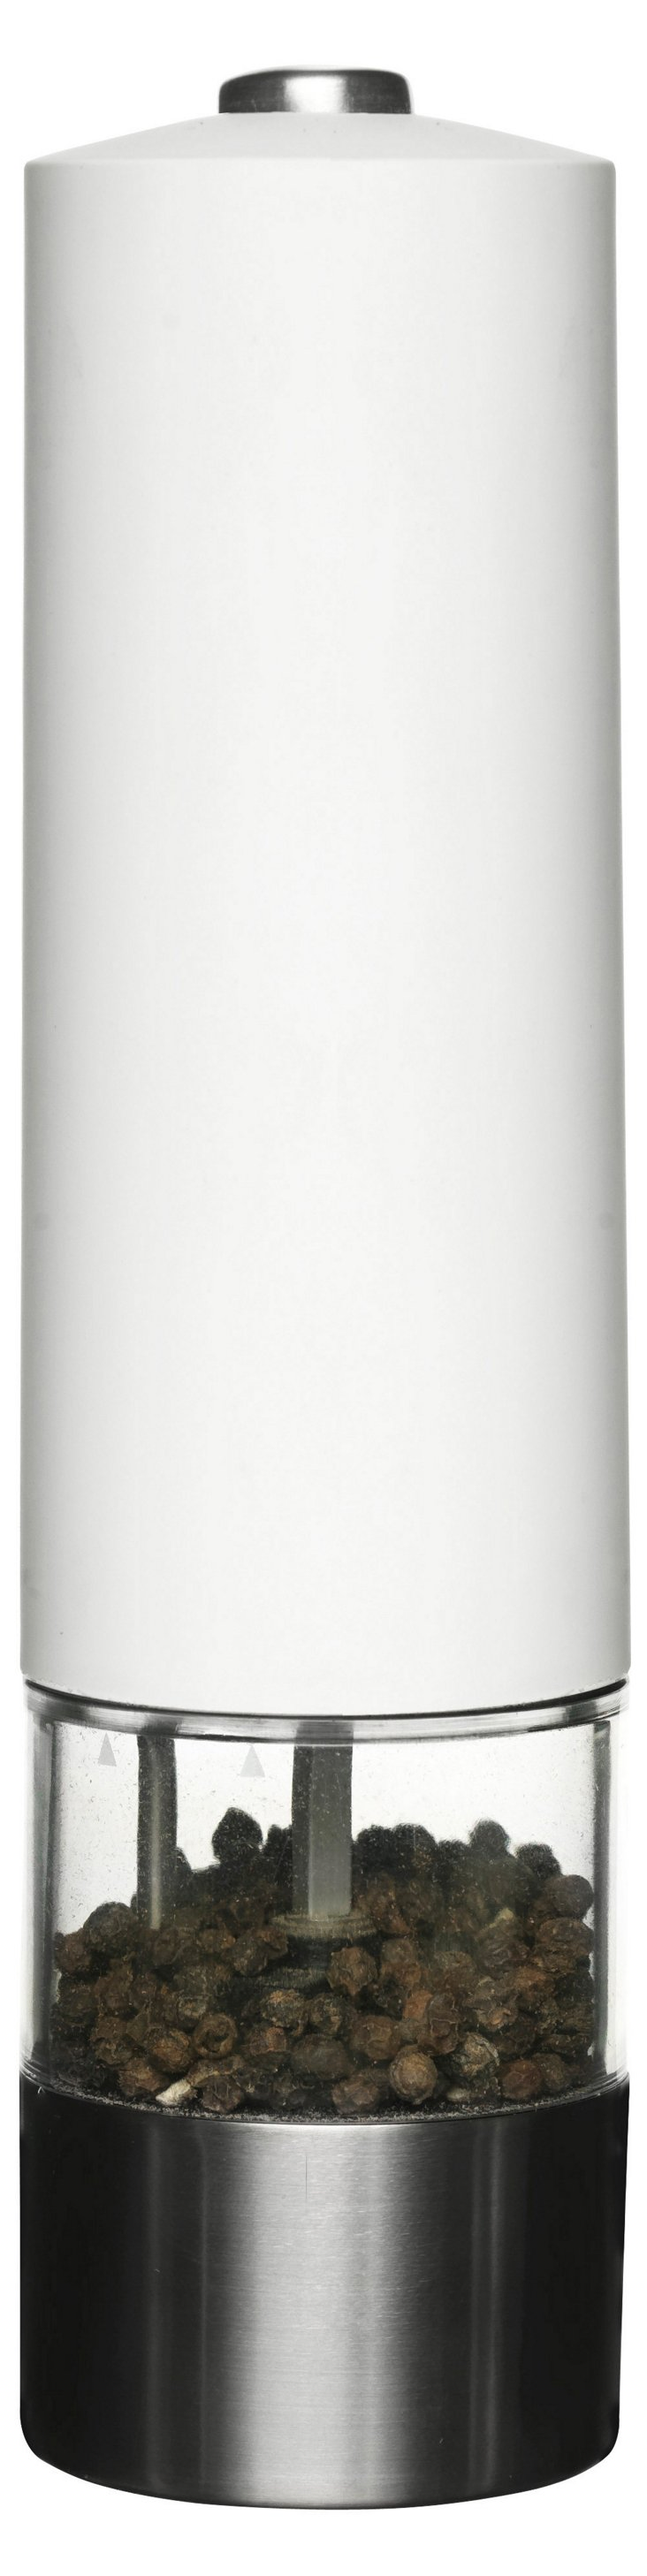 Electric Spice Mill, White